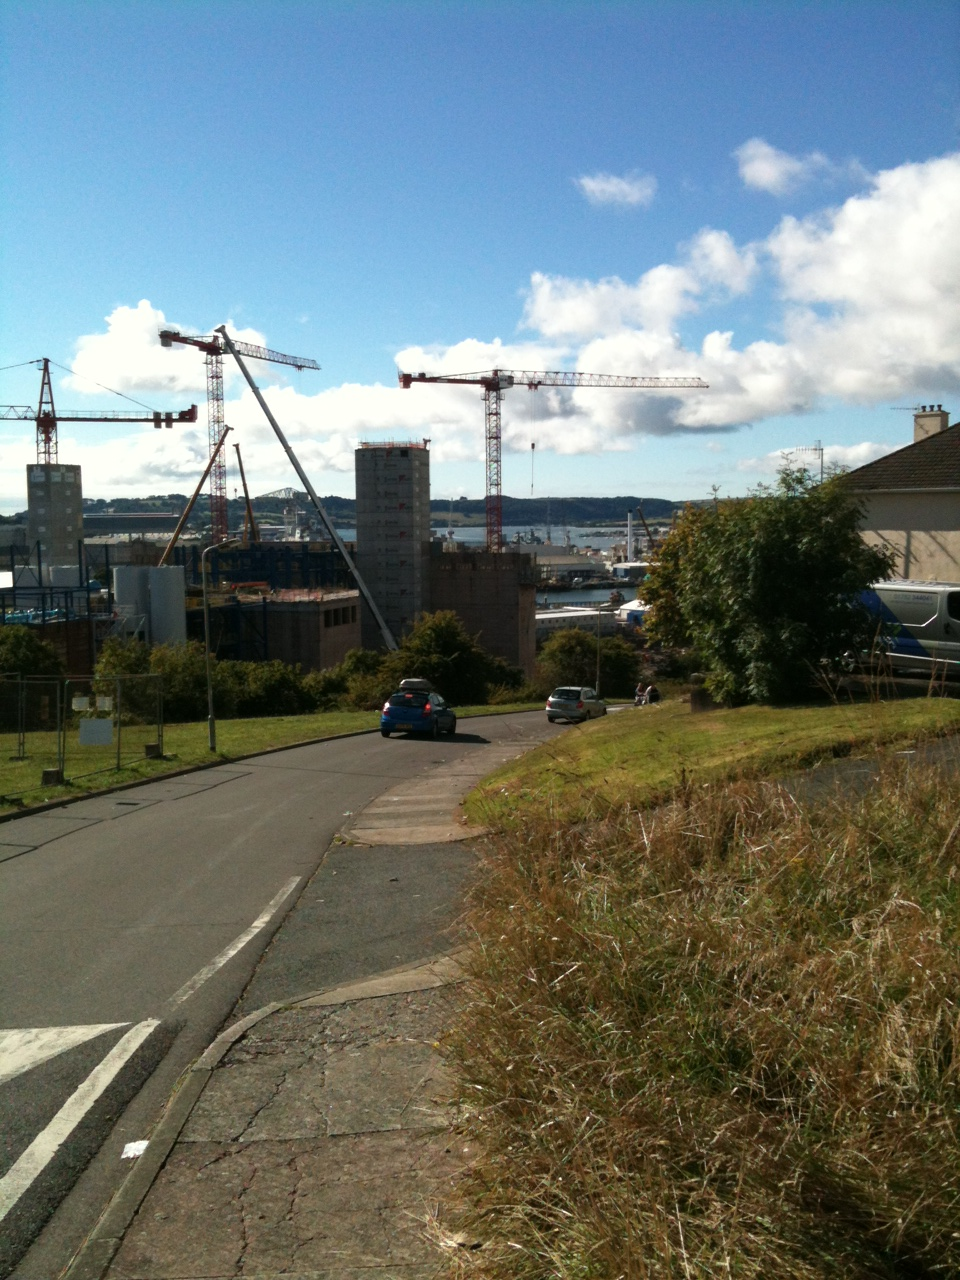 plymouth docks seen from savage road, barne barton